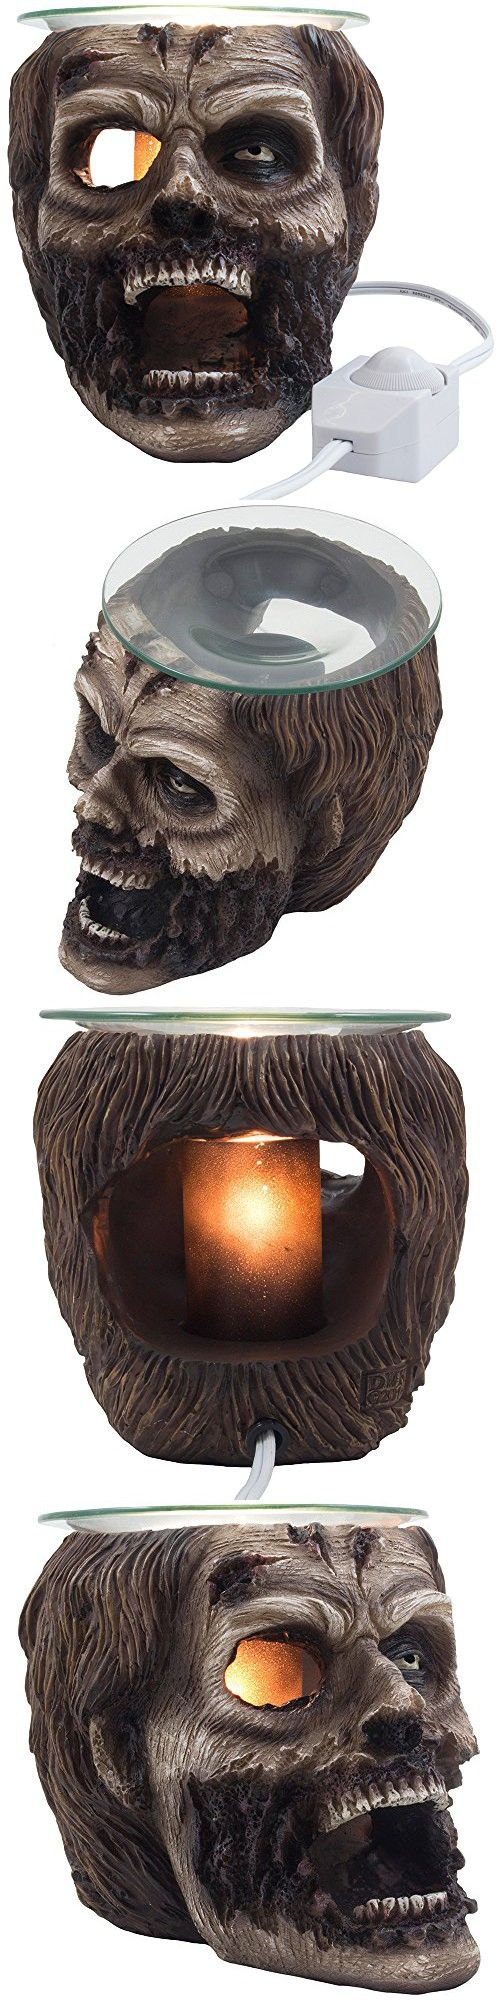 Evil Undead Zombie Head Electric Oil Warmer or Wax and Tart Burner for Scary Halloween Party Decorations and Gothic Home Decor Skull Sculptures & Figurines As Spooky Collectible Novelty Gifts